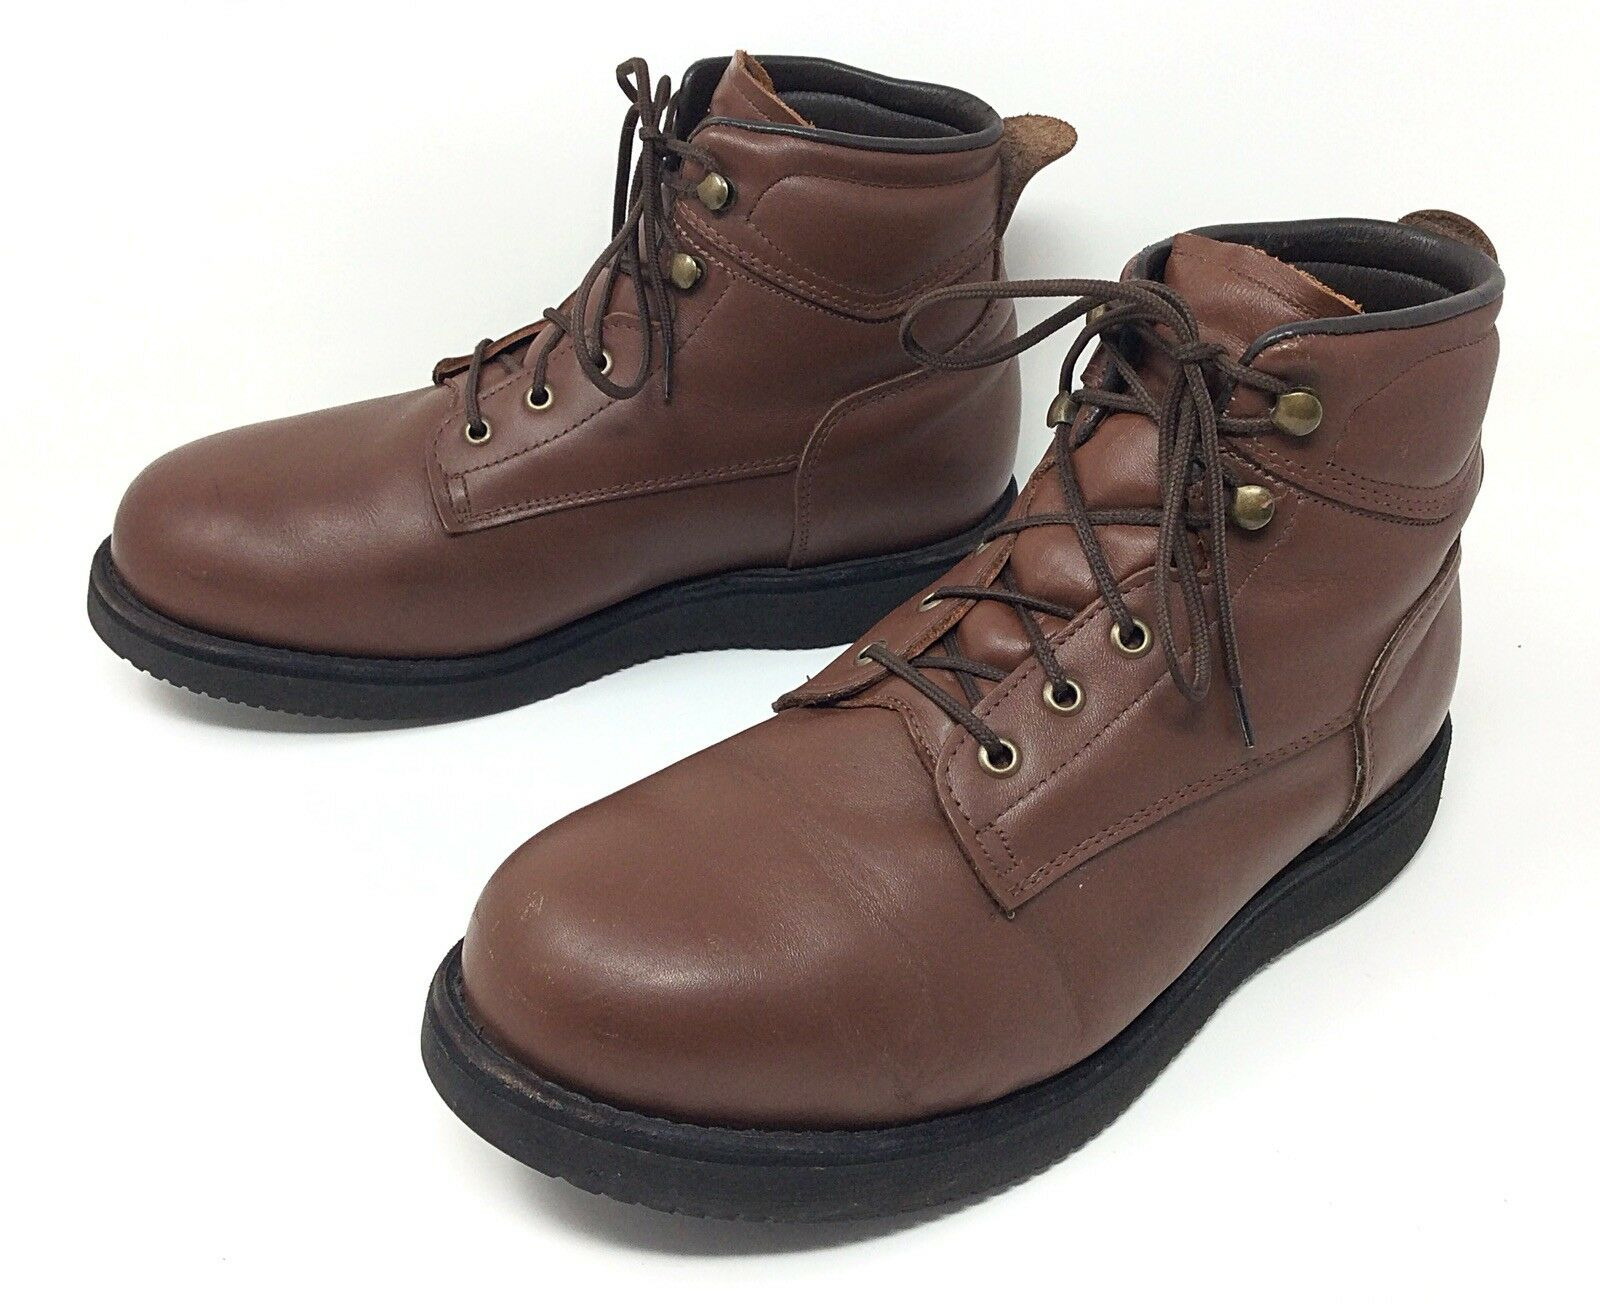 Men's Brown Leather Orthapedic Hiking Ankle Boots 3121 USA Sz. 10 EE